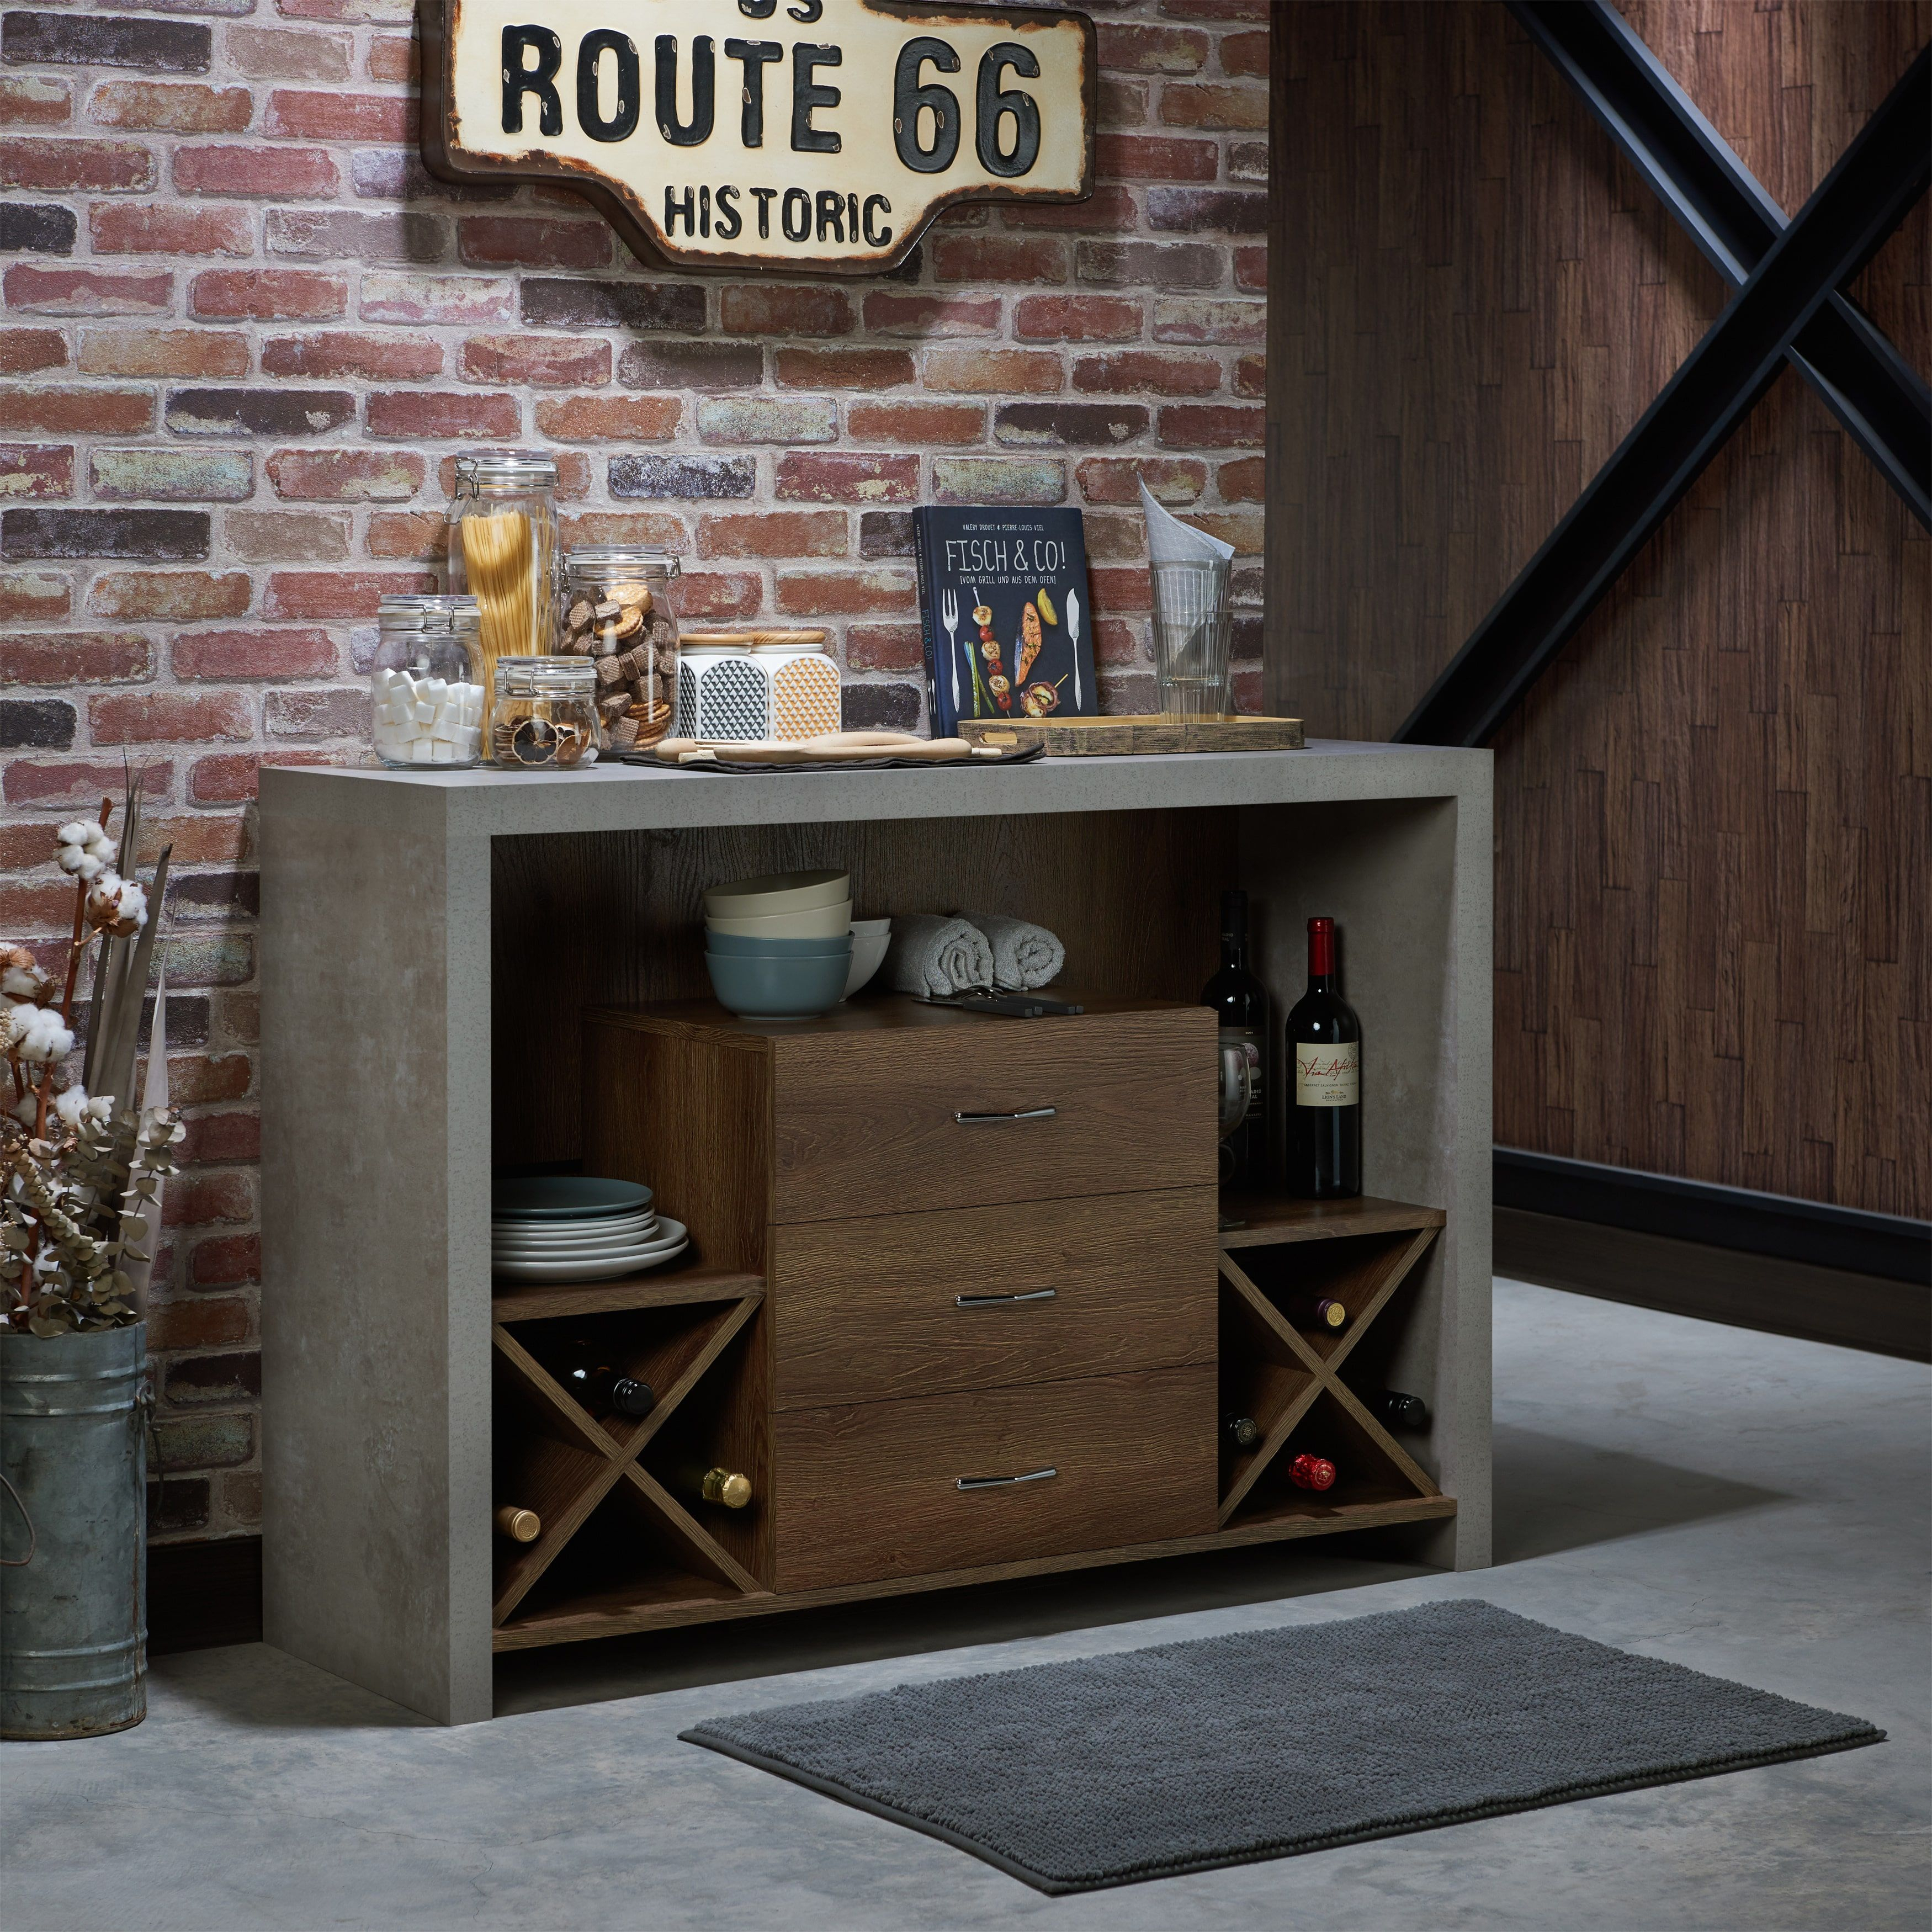 Carbon Loft Graysen Industrial Concrete-Like Buffet In 2019 with regard to Industrial Cement-Like Multi-Storage Dining Buffets (Image 5 of 30)